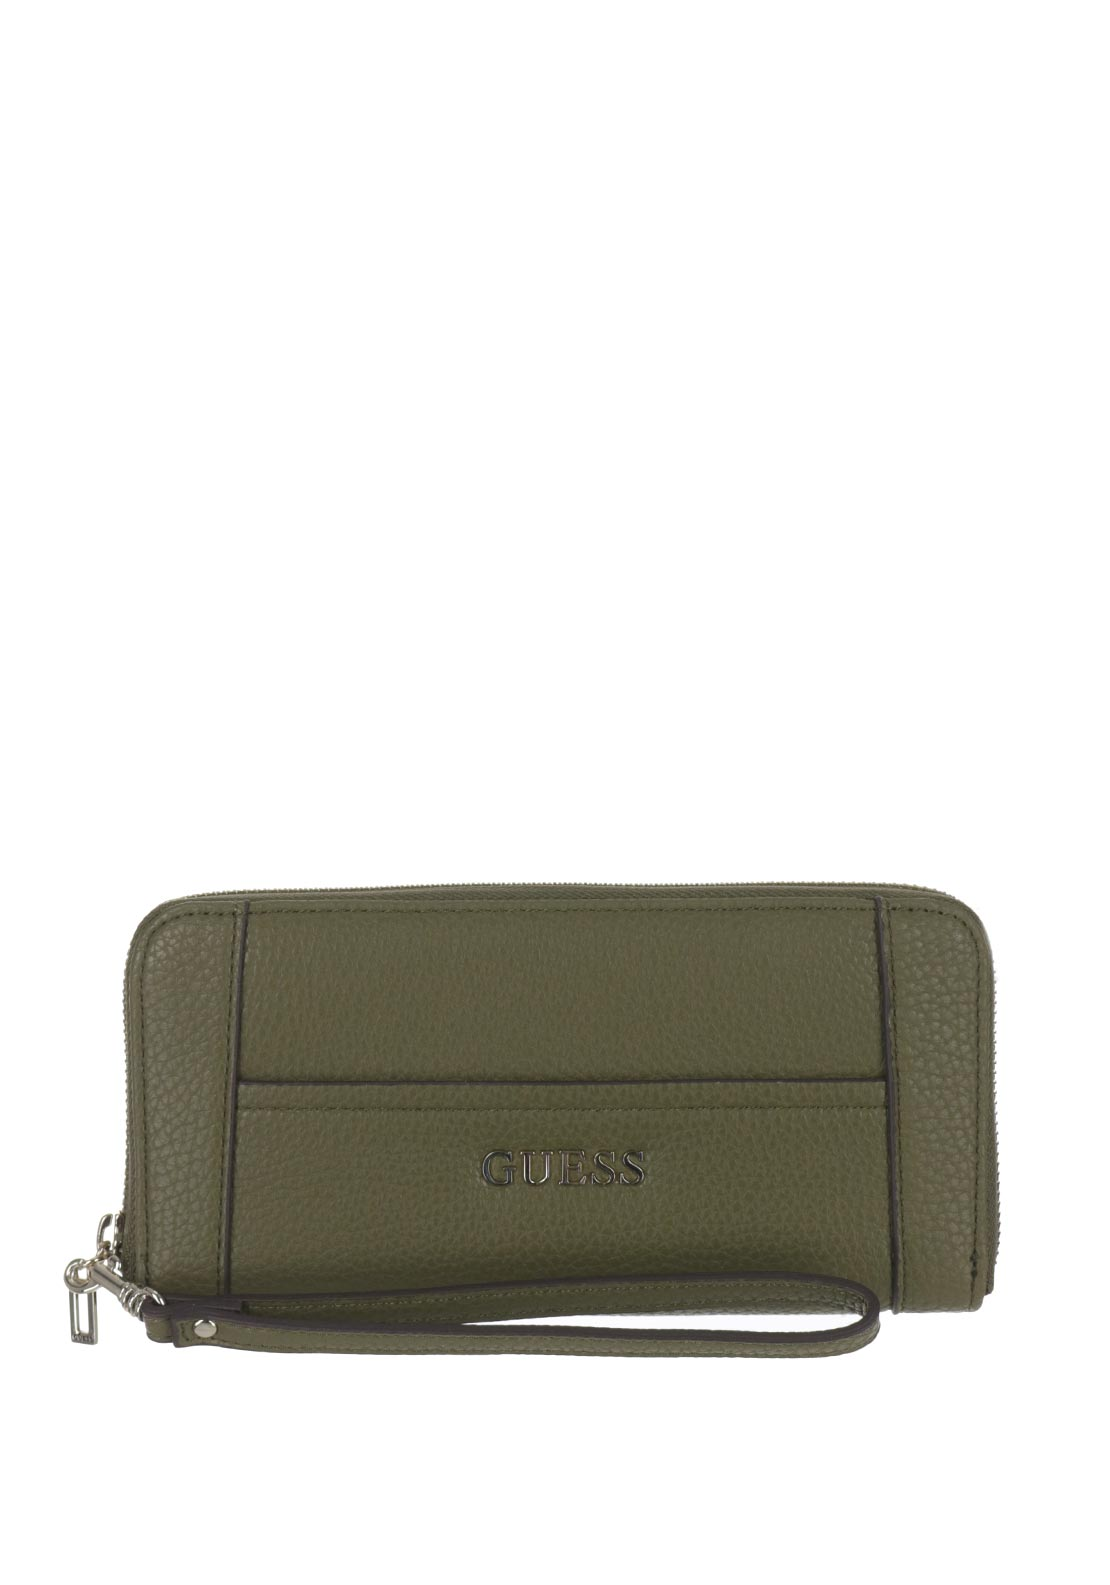 Guess Nikki Large Wristlet Zip Around Purse, Olive